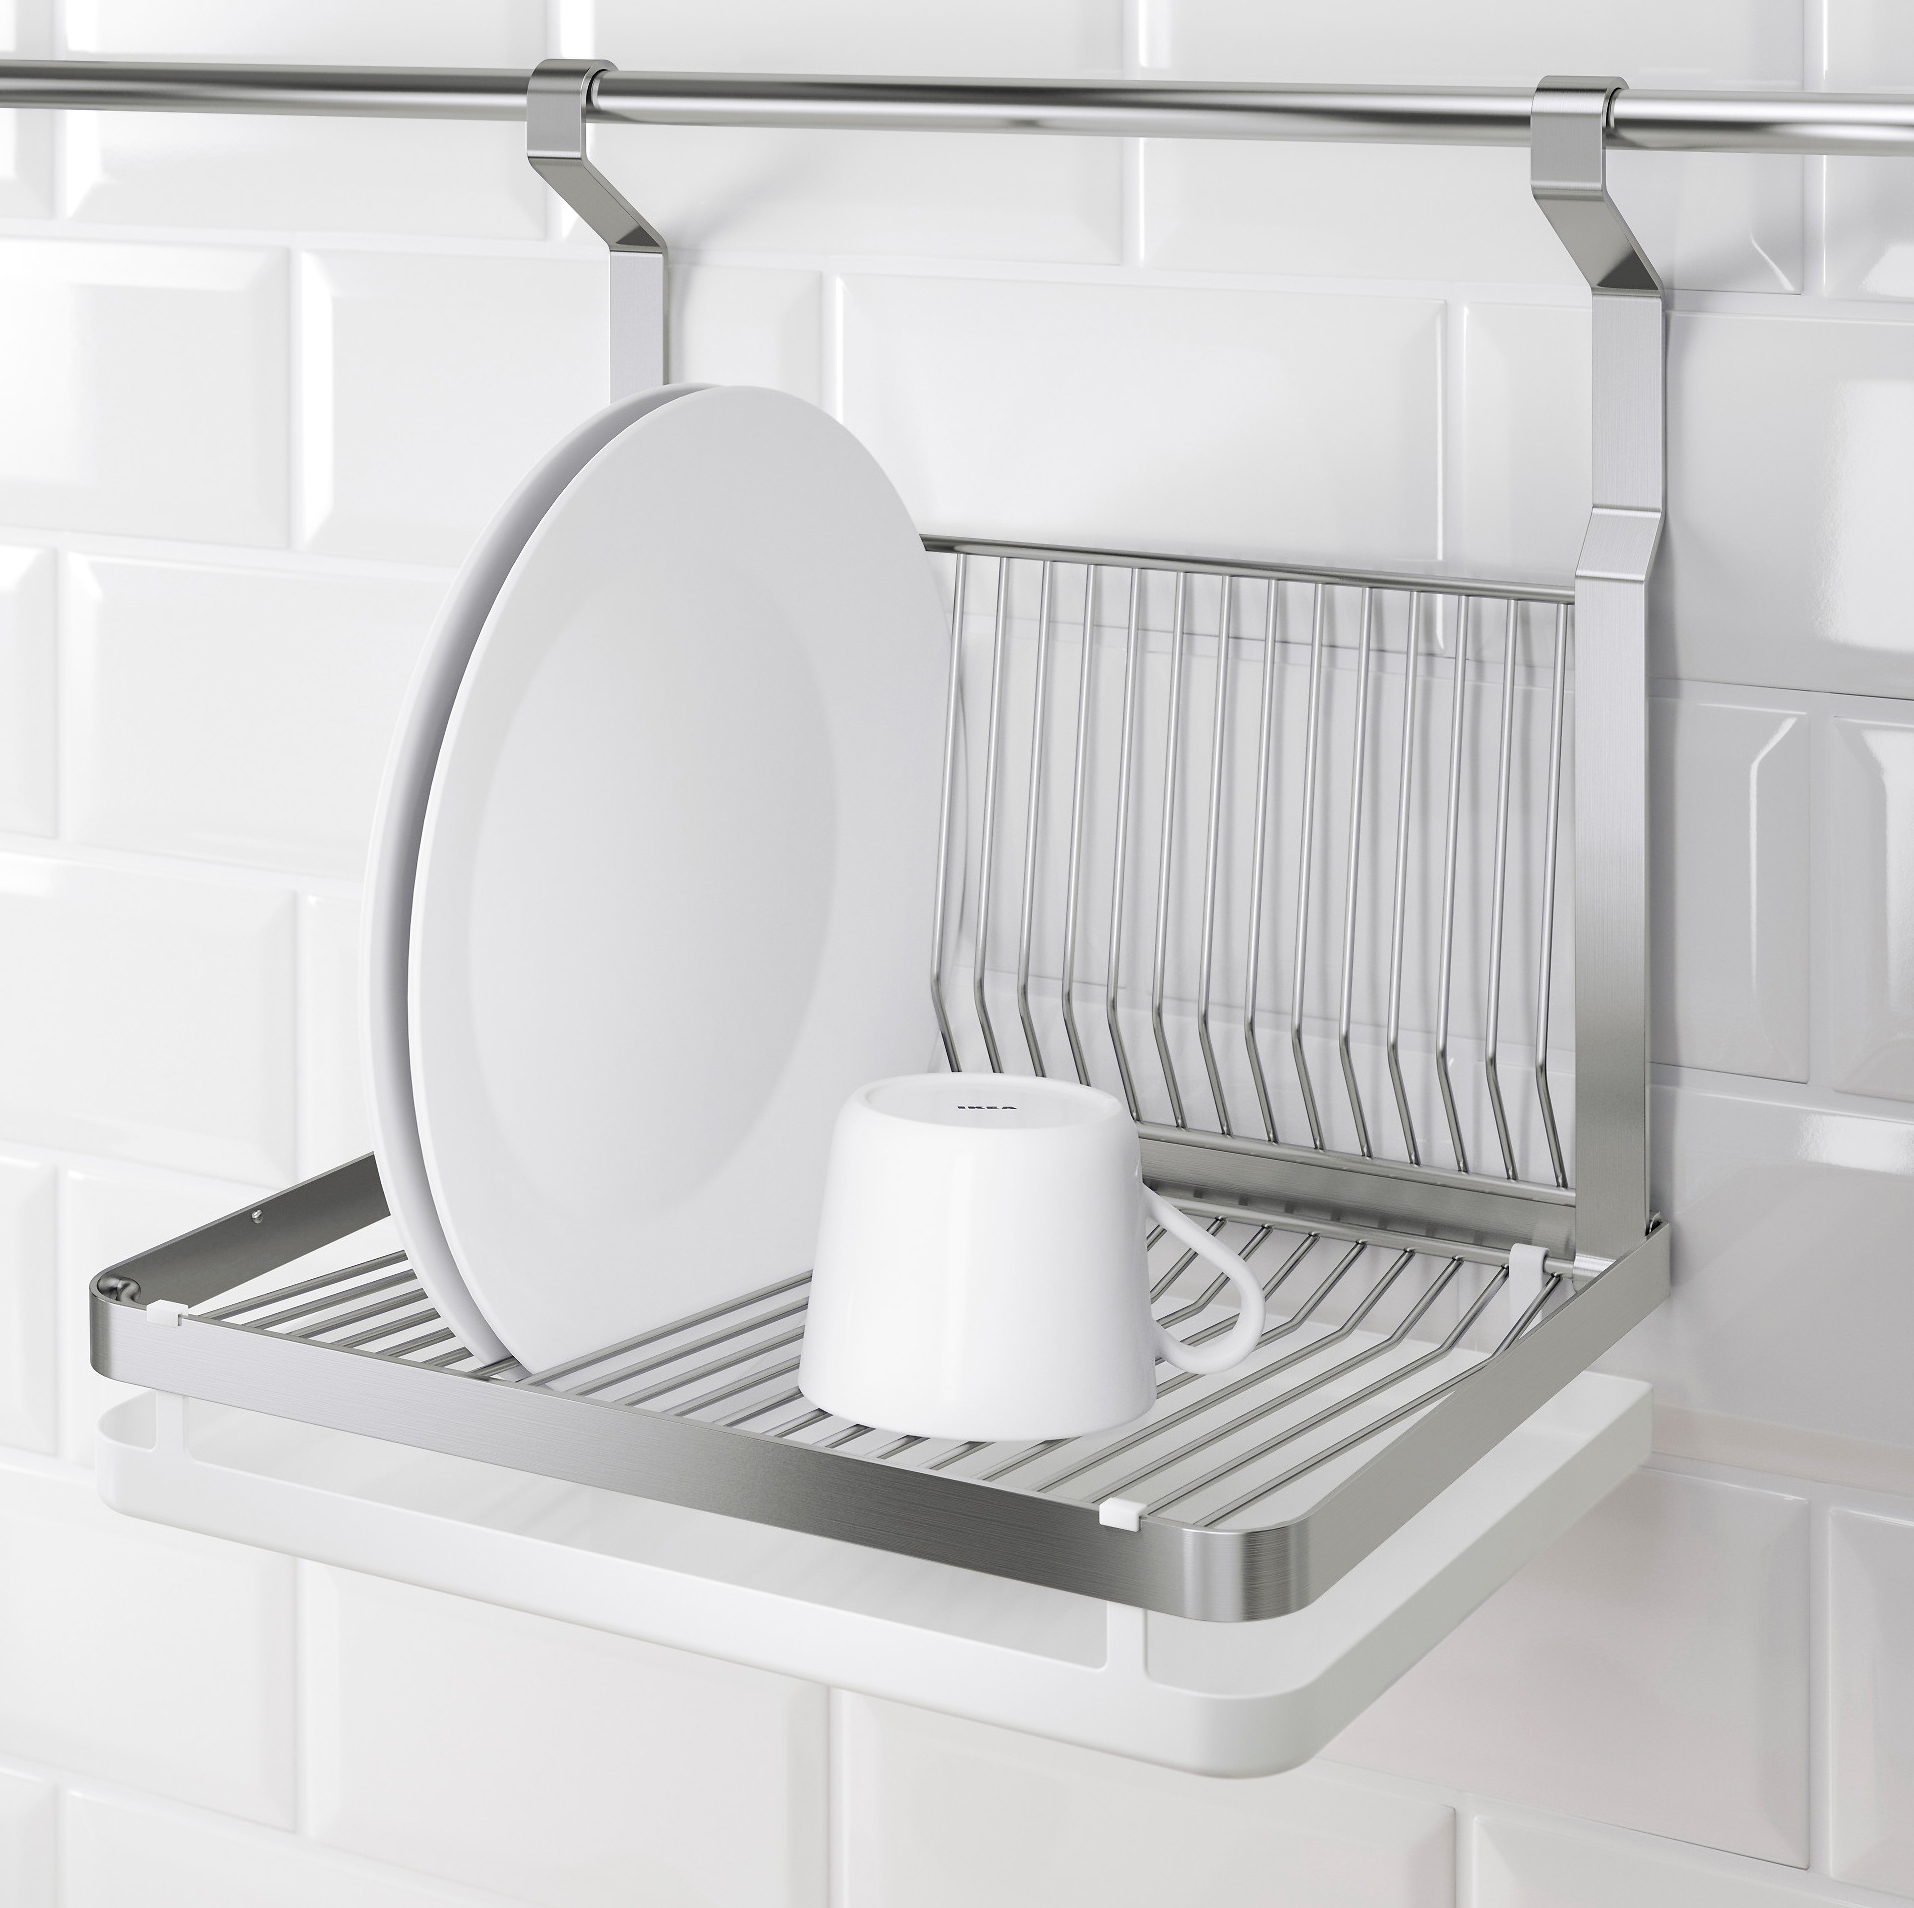 Top 10 Well-Designed Dish Racks For Small Kitchens